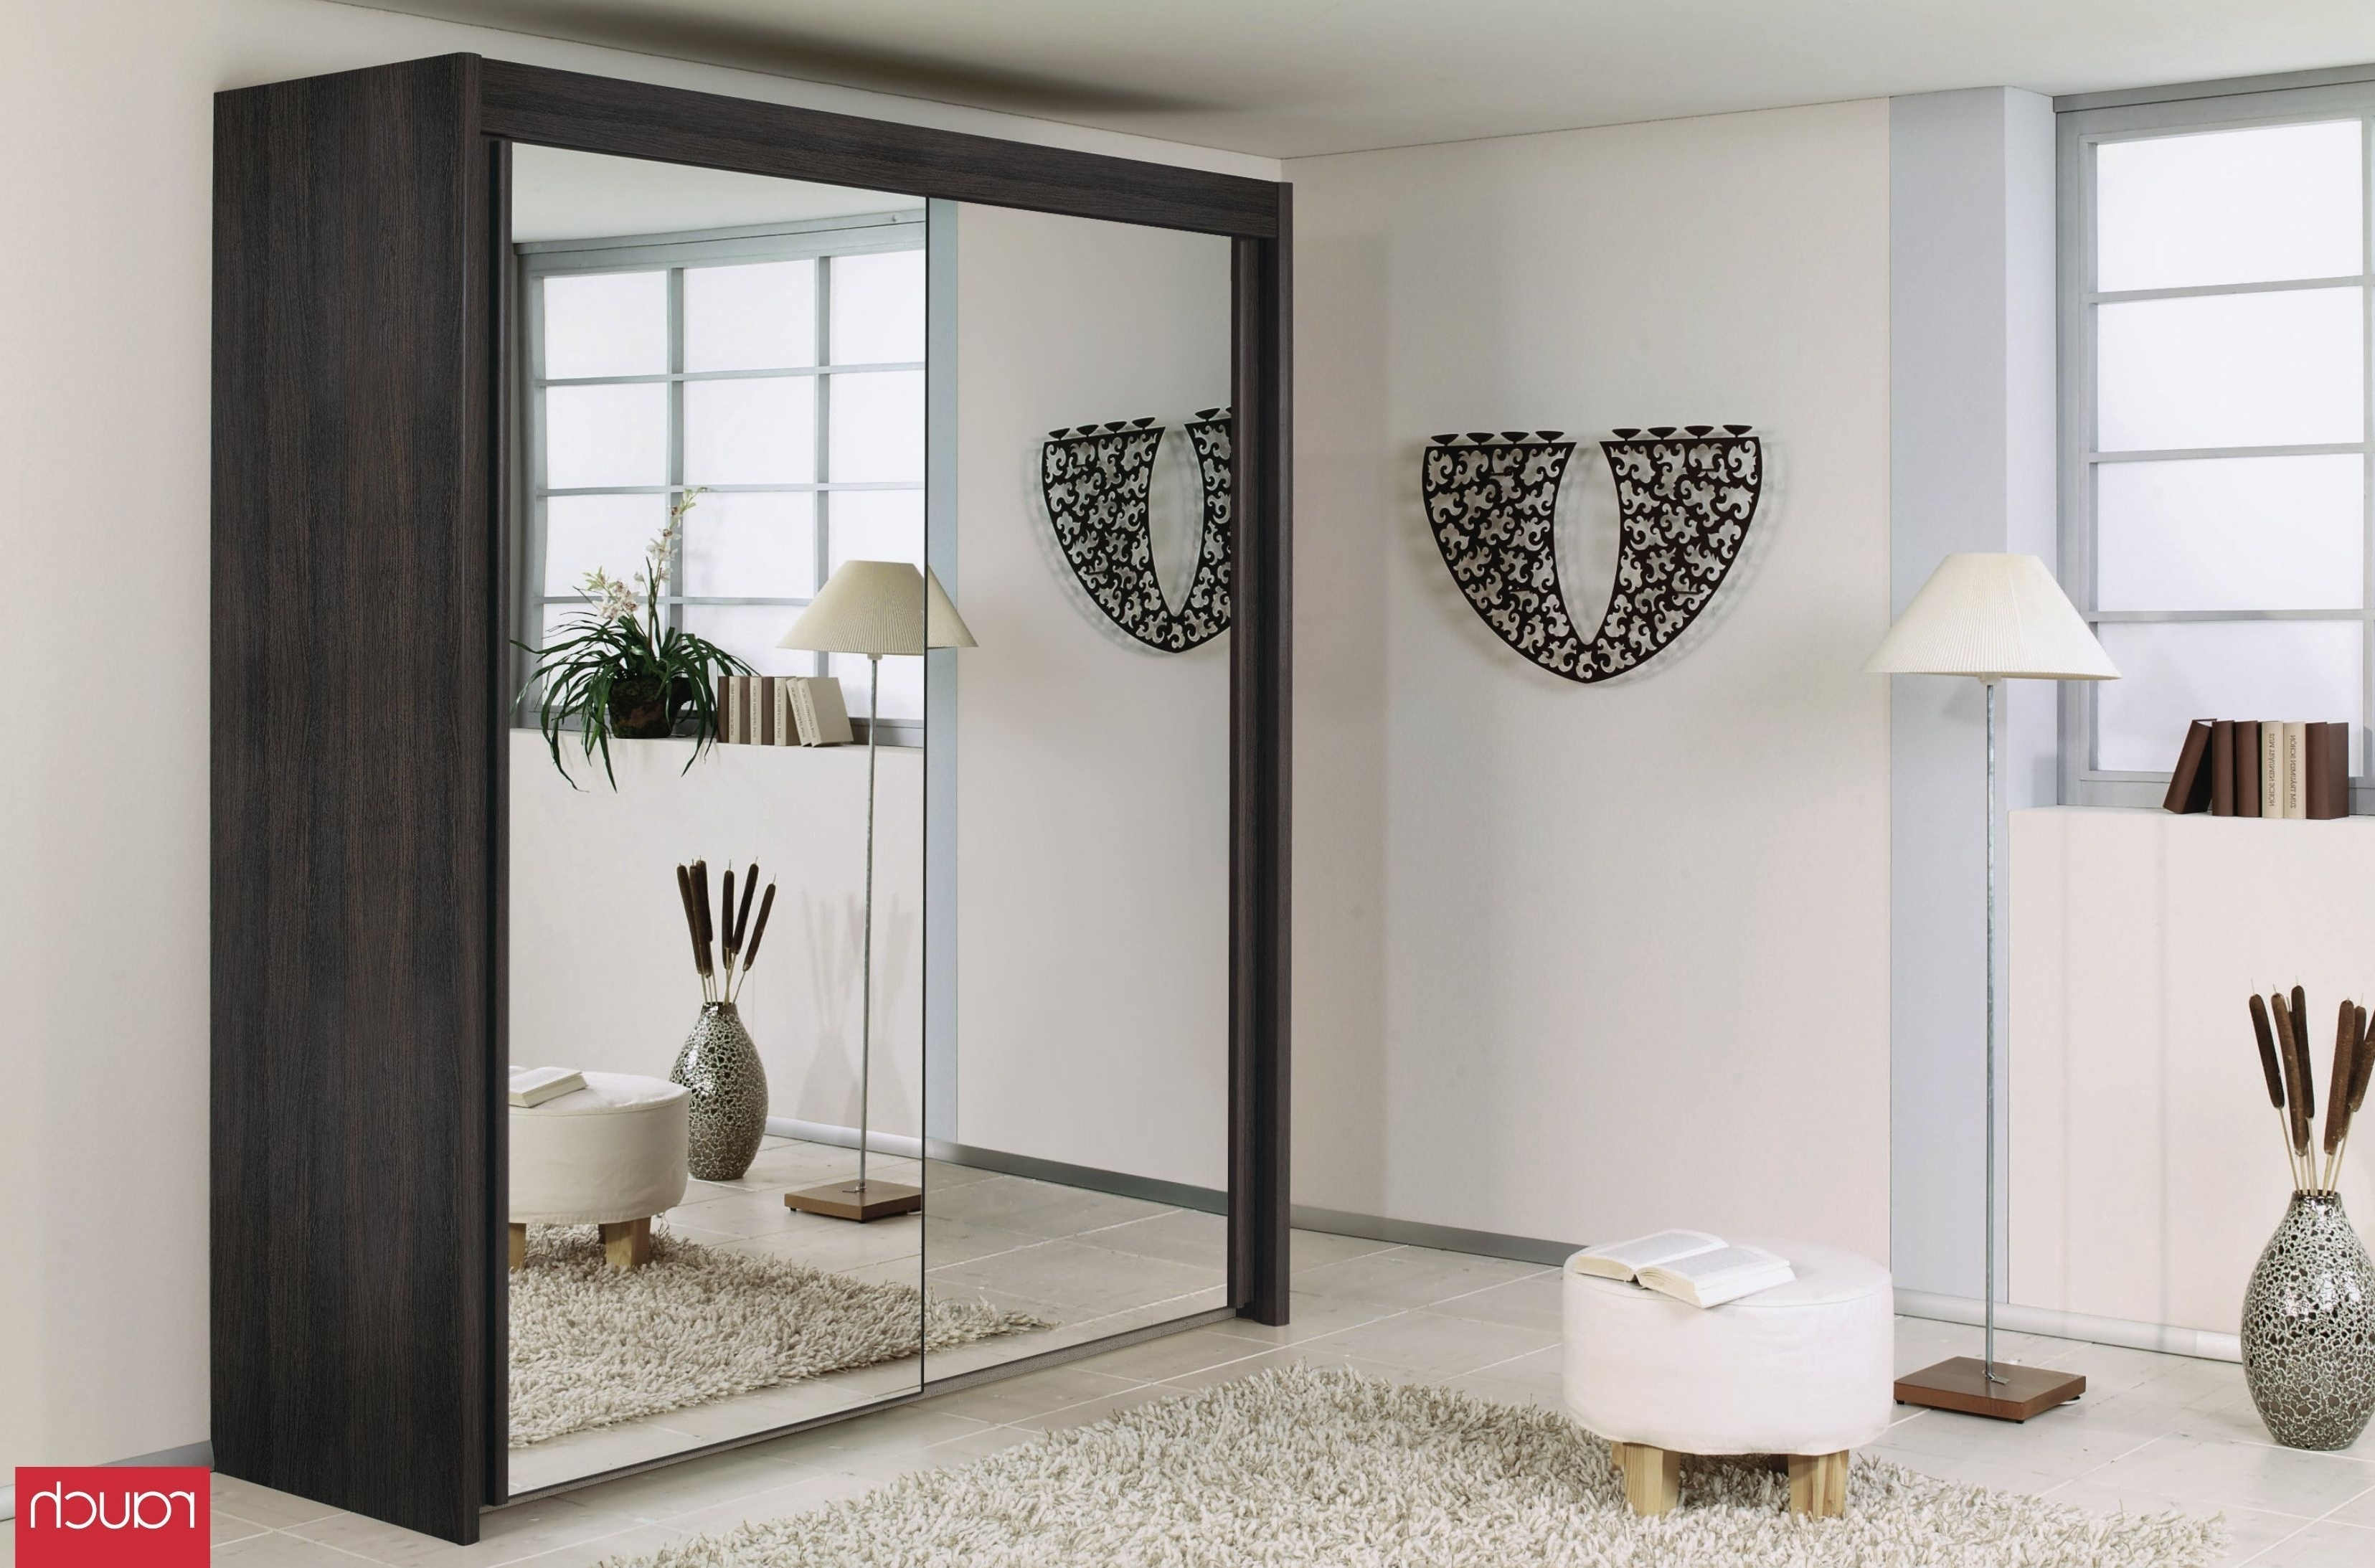 Widely Used Rauch Sliding Wardrobes With Regard To Rauch Imperial Wenge Shiraz 2 Door Sliding Wardrobe – W 201Cm H 223Cm (View 15 of 15)